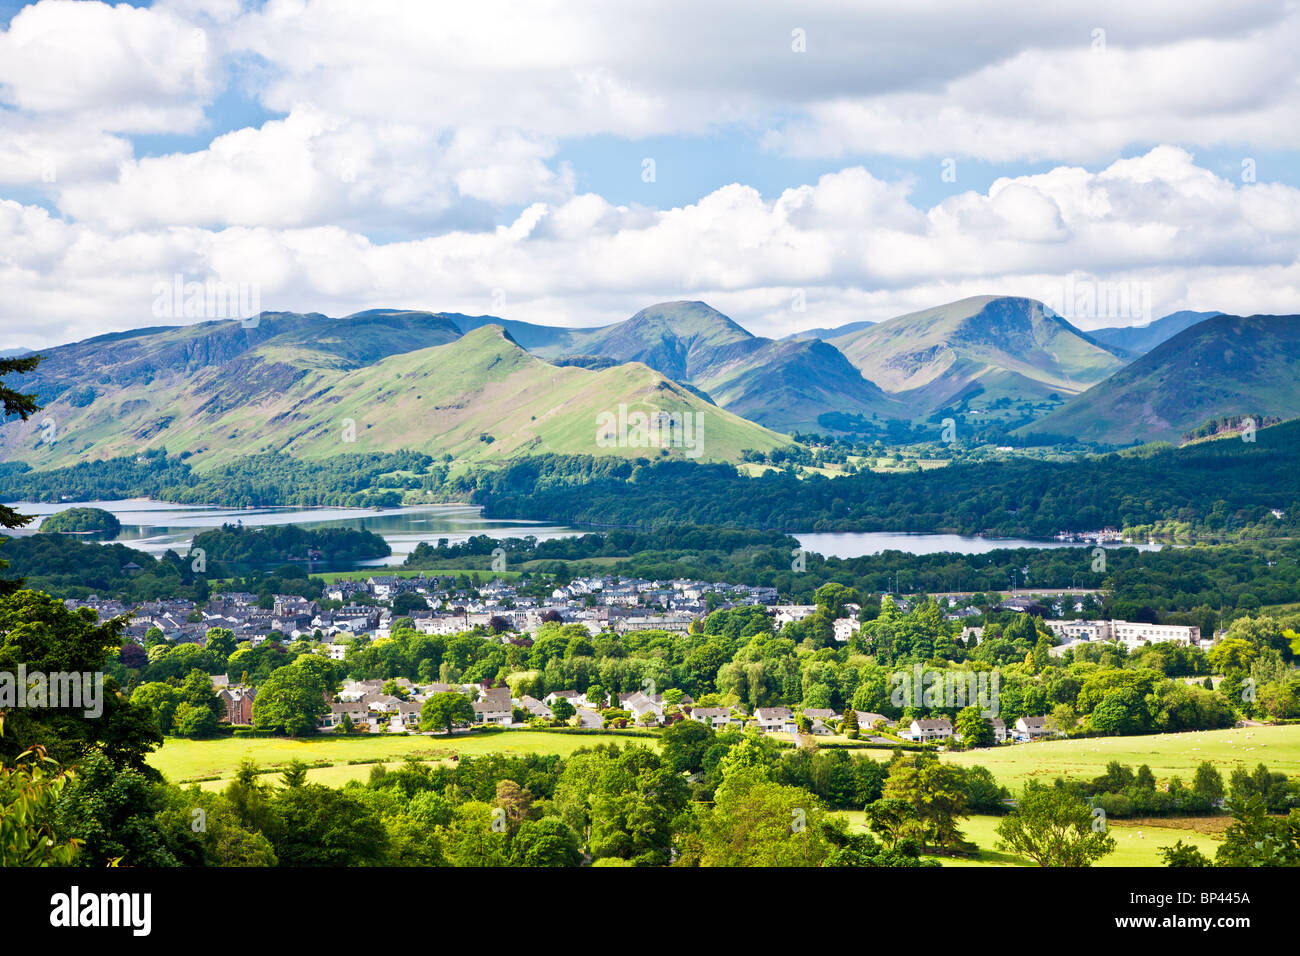 View over Keswick, Derwent Water and Cat Bells, Lake District, Cumbria, England, UK - Stock Image